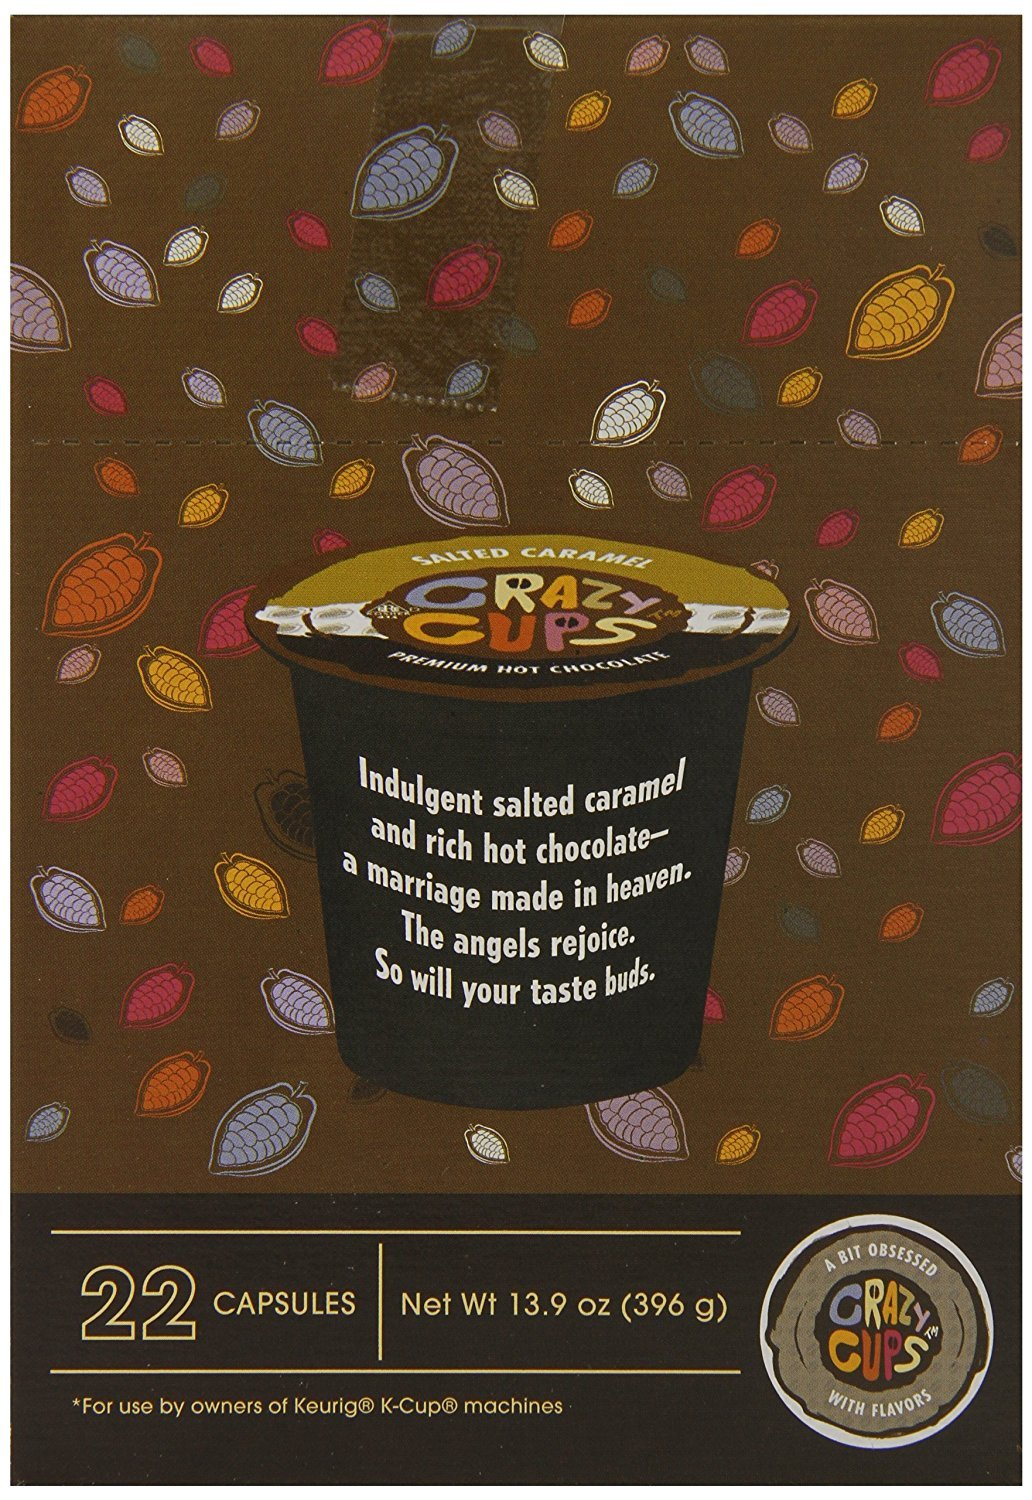 Crazy Cups Seasonal Hot Chocolate, Salted Caramel Fudge, Single Serve Cups for Keurig K Cup Brewers,13.9 oz, 22 Count: Amazon.com: Grocery & Gourmet Food